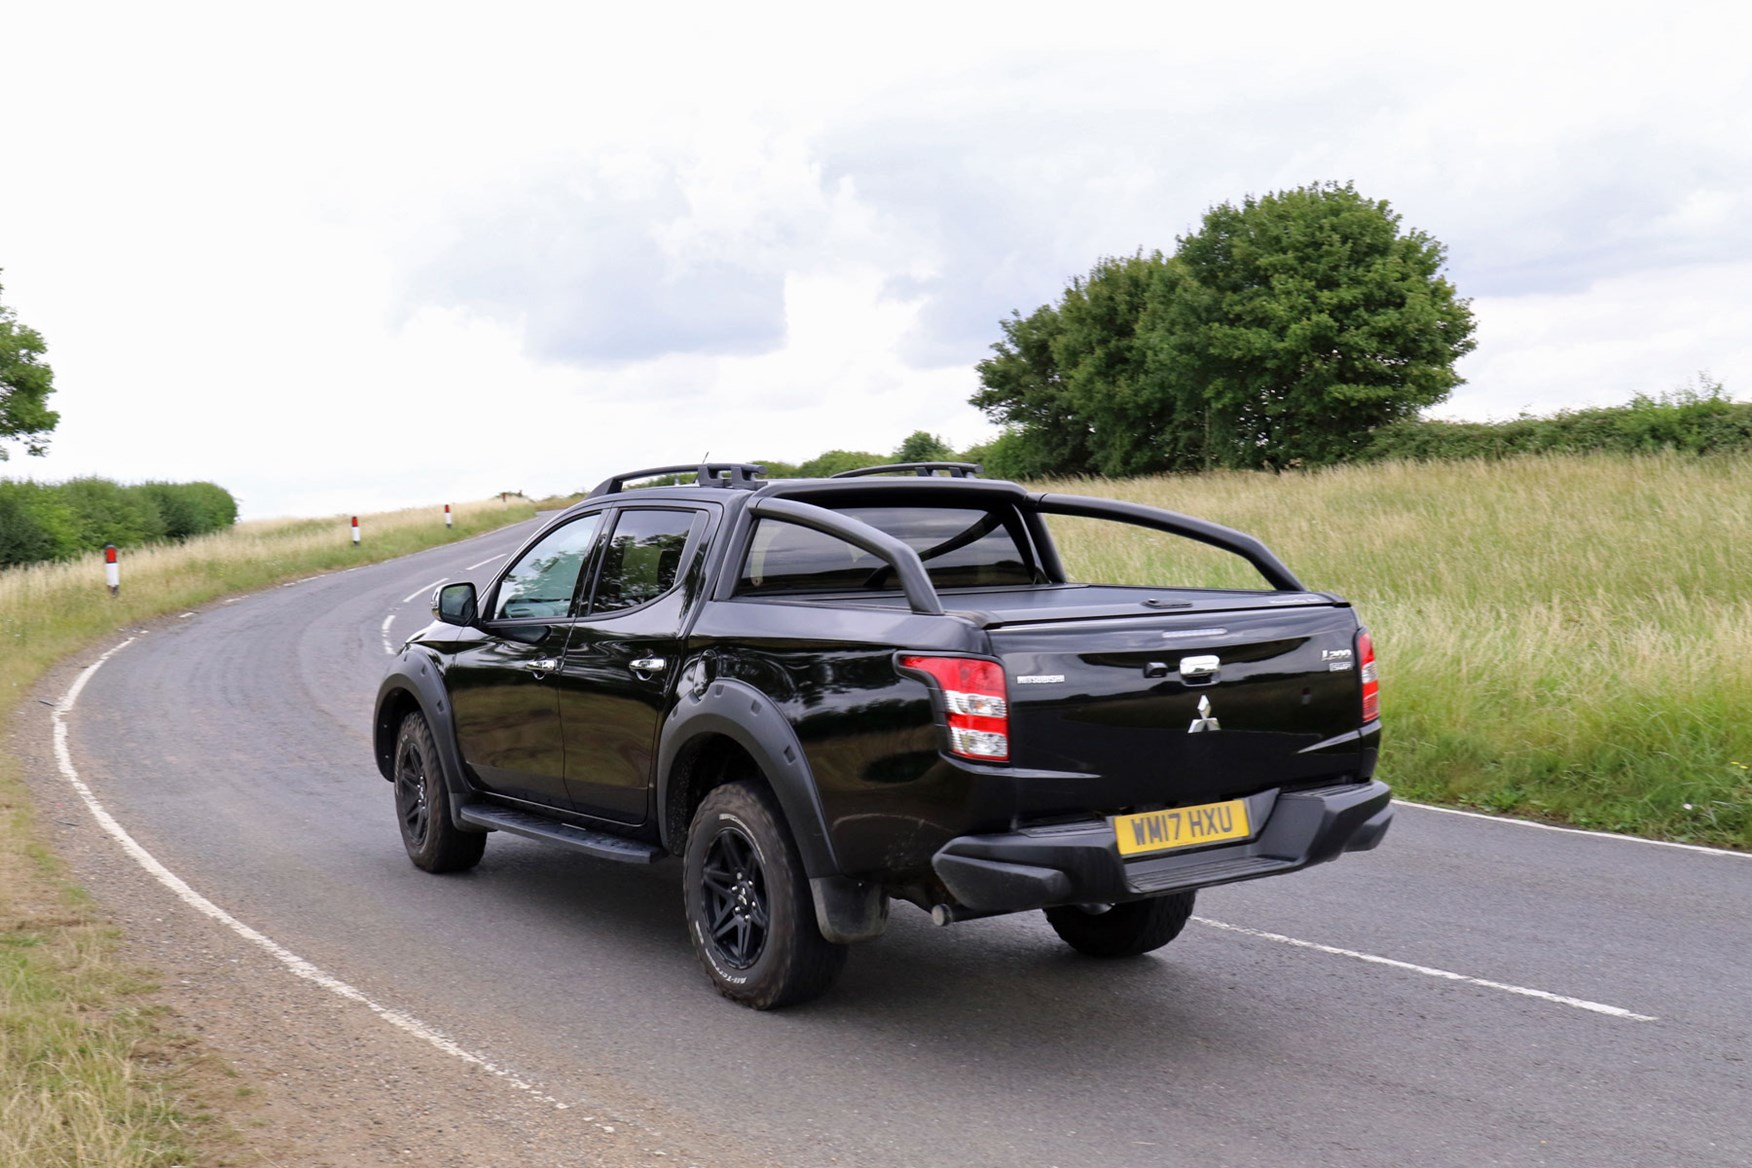 Mitsubishi L200 review, black Barbarian SVP, driving, rear view